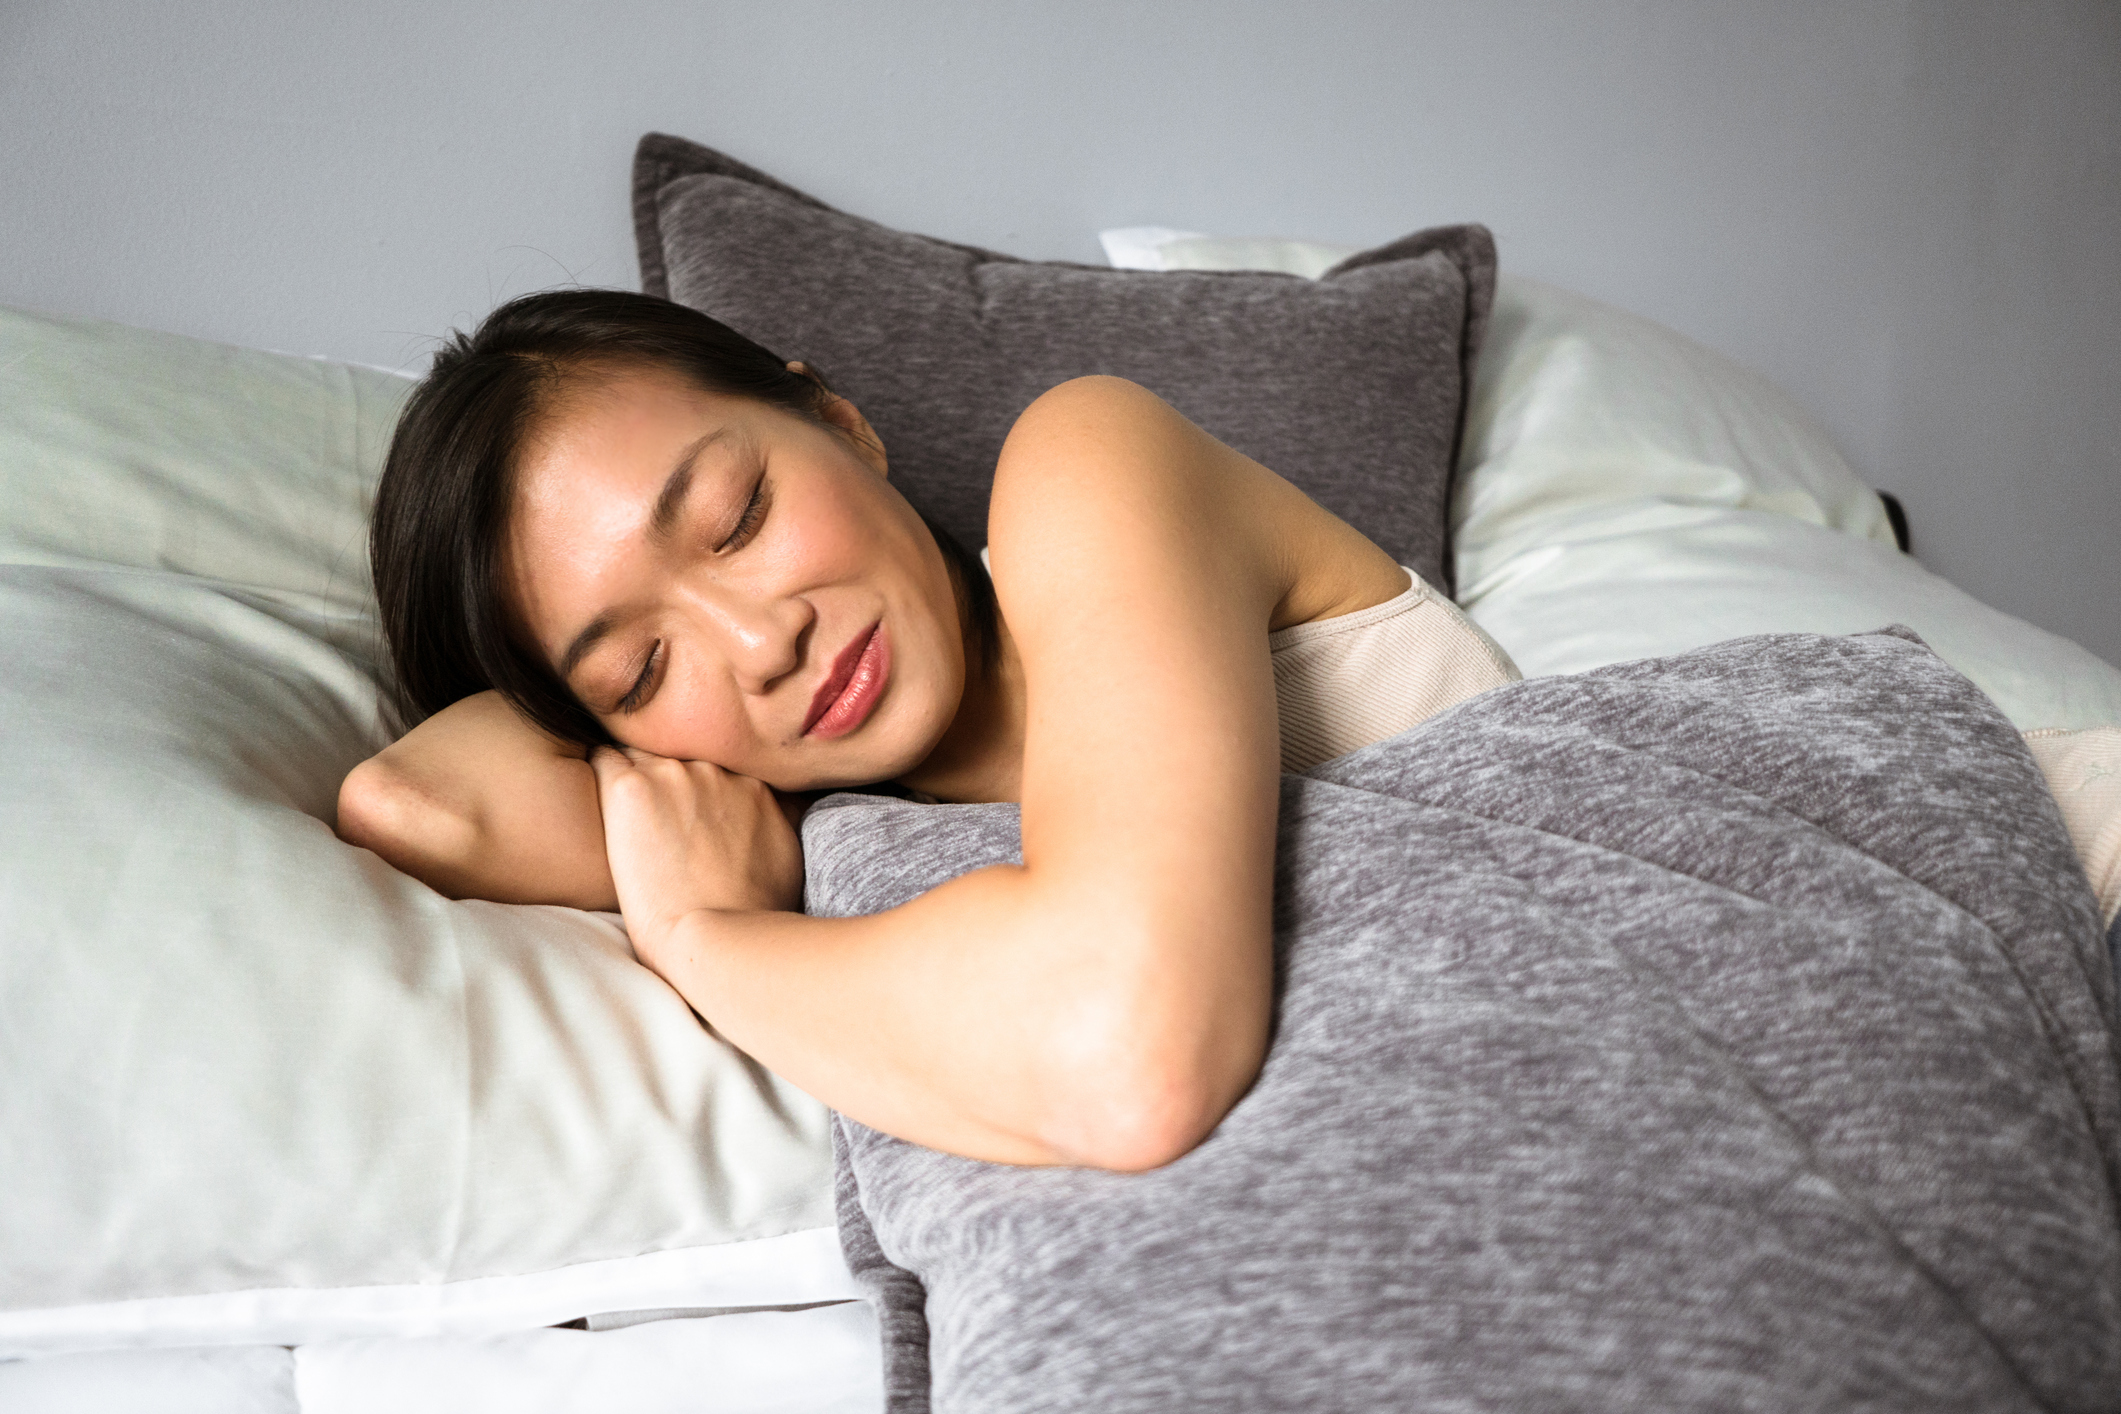 When Is the Best Time to Buy a Mattress? - NerdWallet